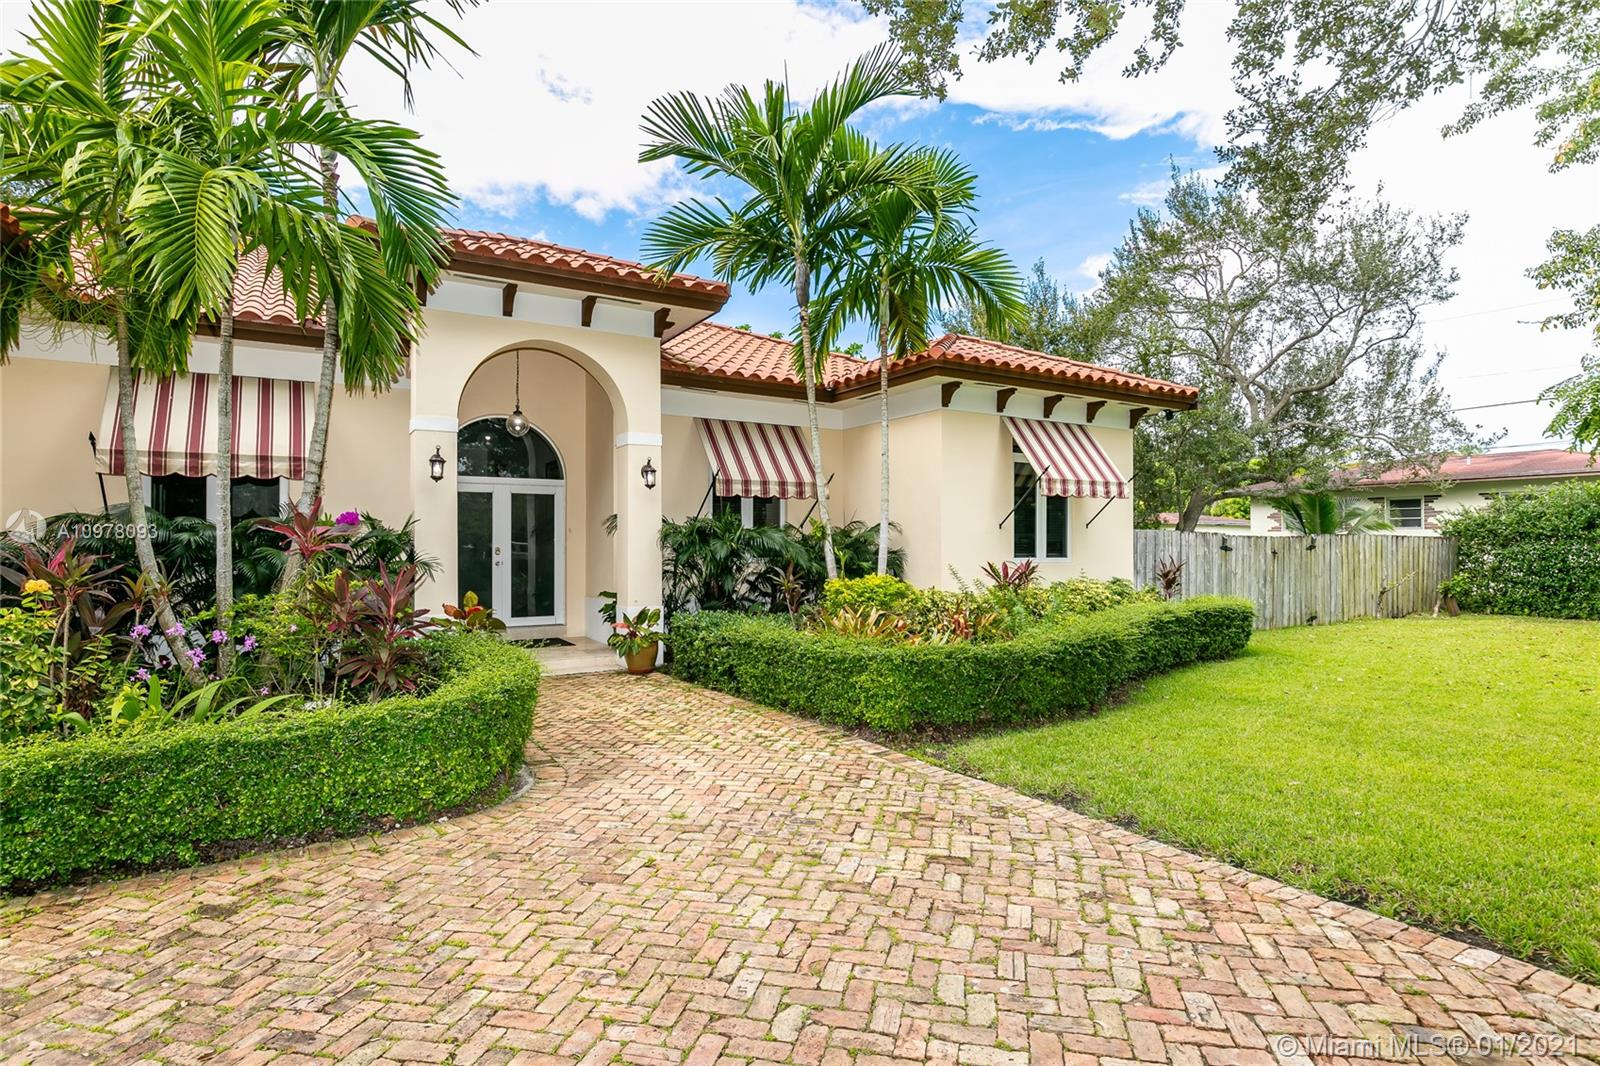 Beautiful and spacious 5 Bed   4 Bath in South Miami. 0.52 Acre Lot. Retired Owners ready to downsize. Living Sq. Ft. 3, 142 as per appraiser. This luxurious Mediterranean style home was built in 2011 with beautiful 13 ft ceilings. No expense was spared and no detail overlooked! Plenty of natural light throughout the home. Large kitchen with dark wood cabinetry, granite countertops, and stainless steel appliances. Pool, jacuzzi, and lots of entertainment space. Close to major highways and great schools.